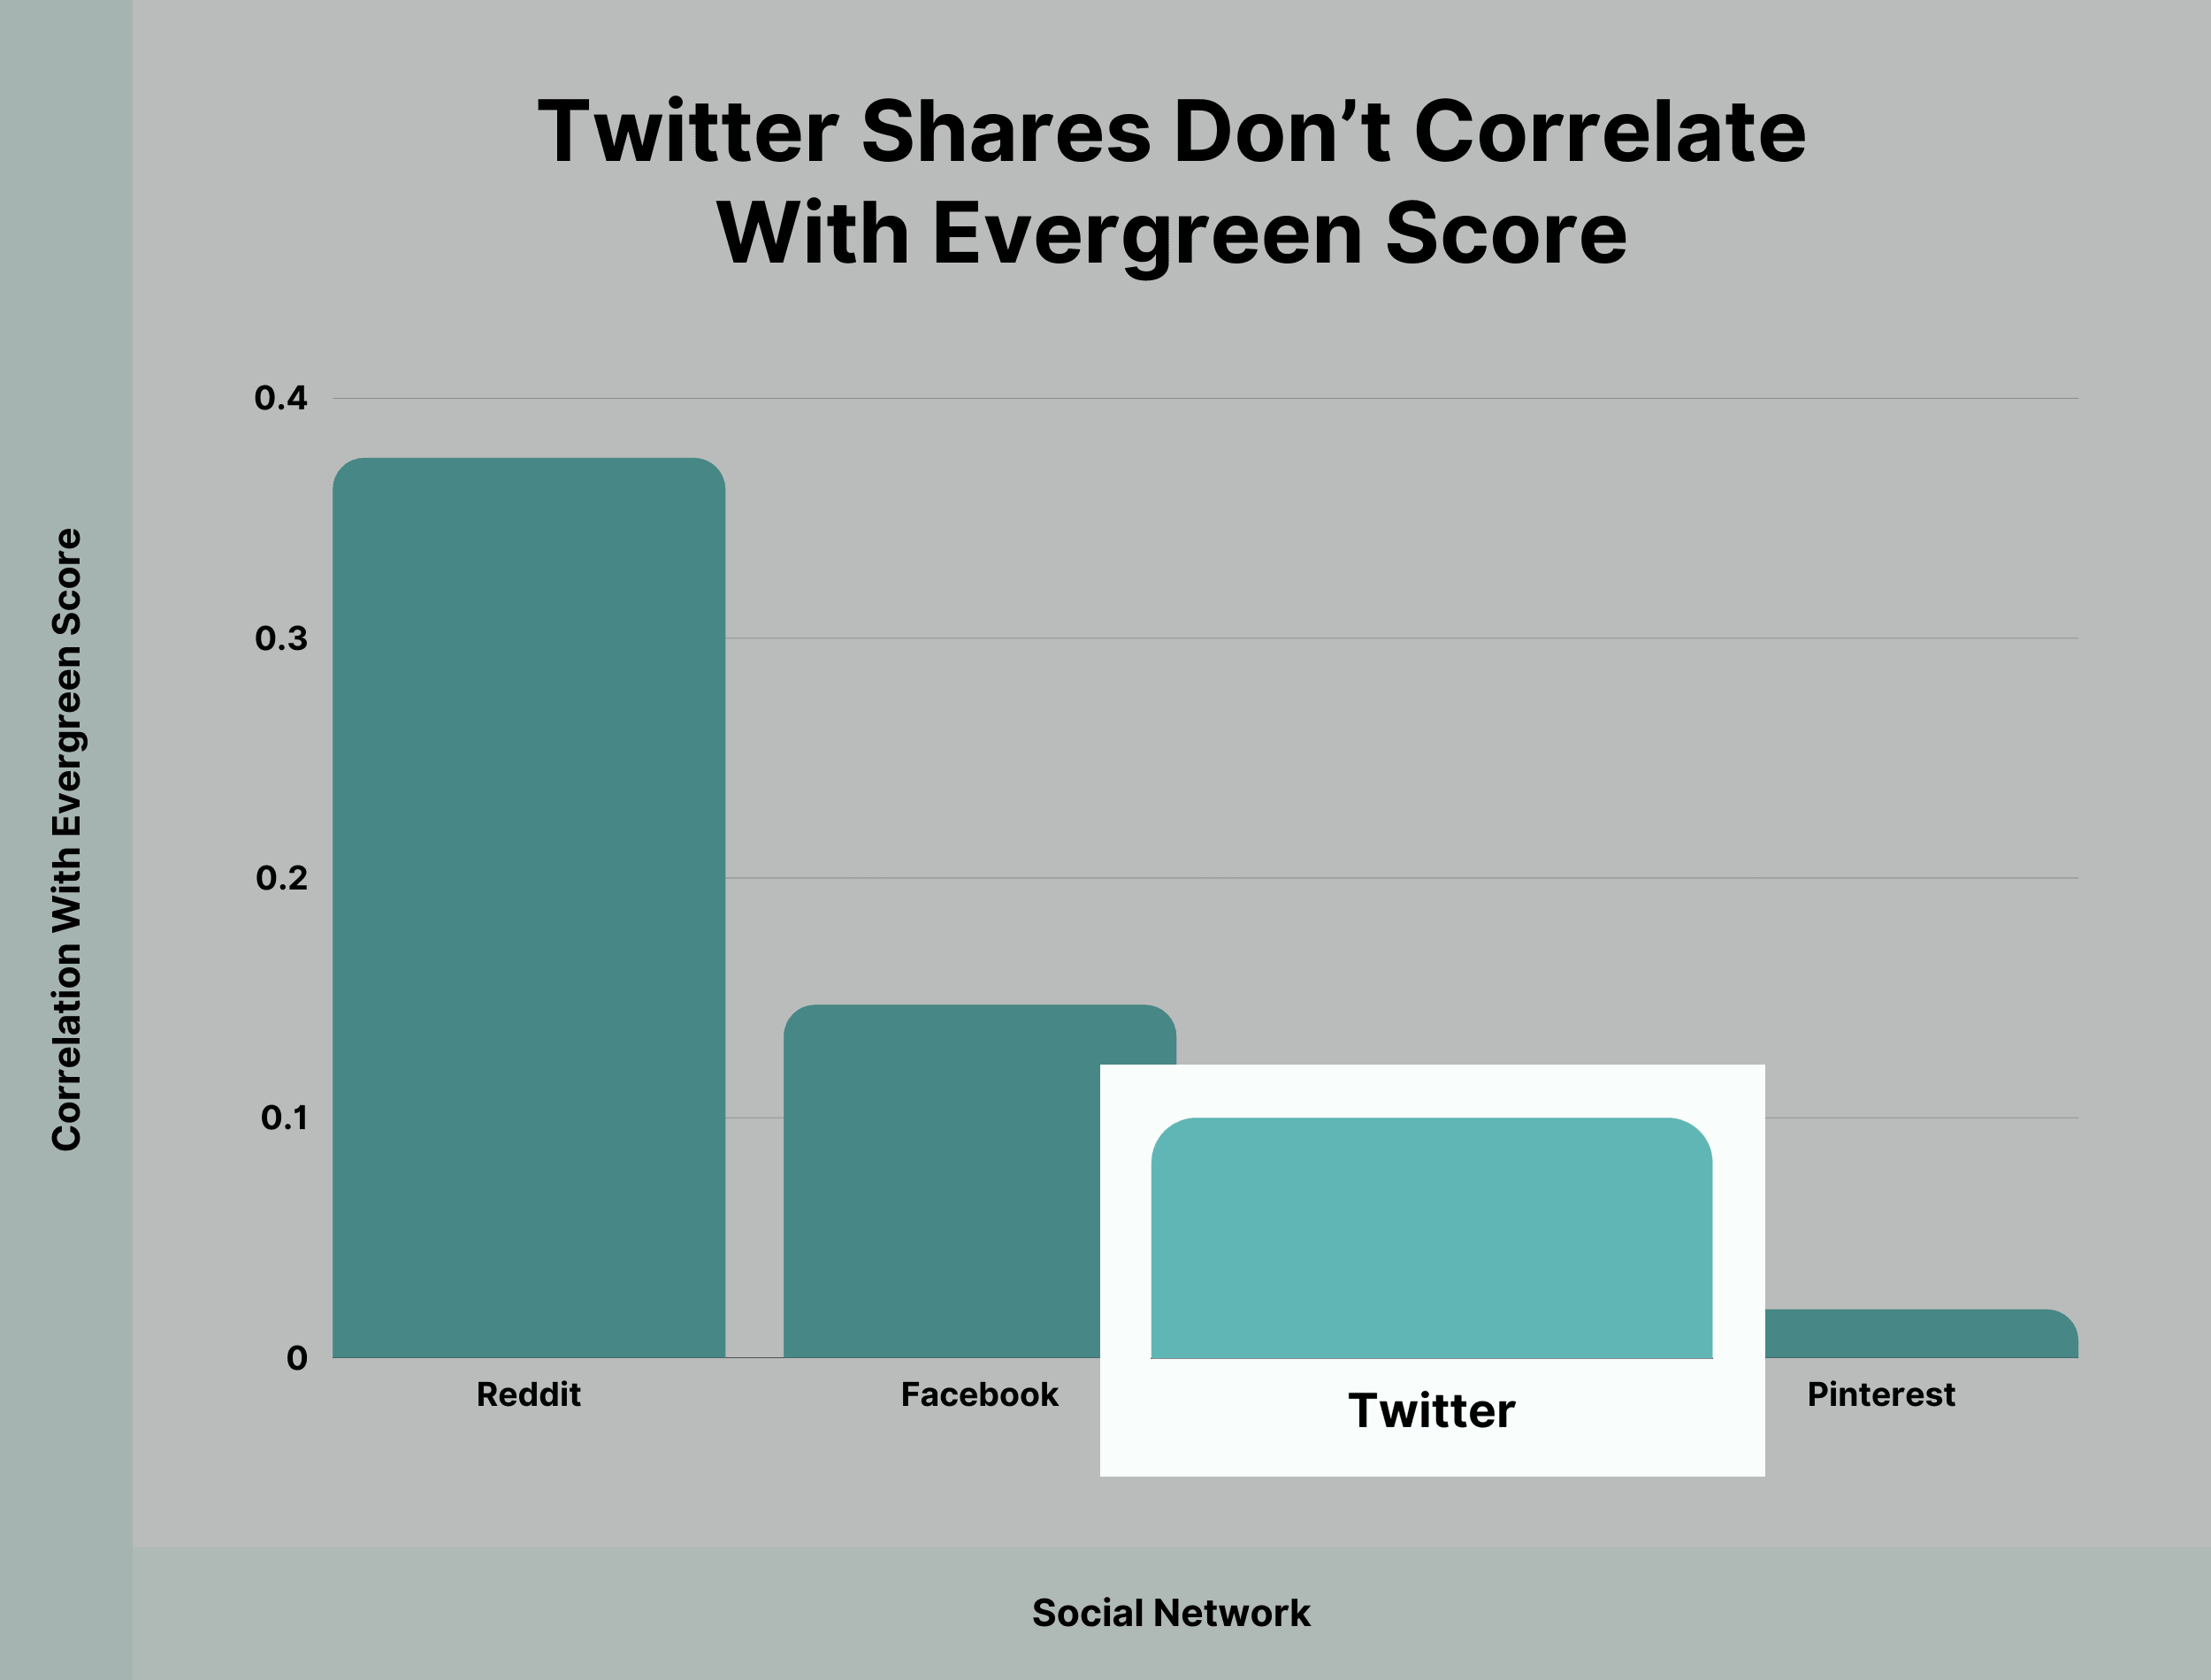 Twitter shares don't correlate with evergreen score